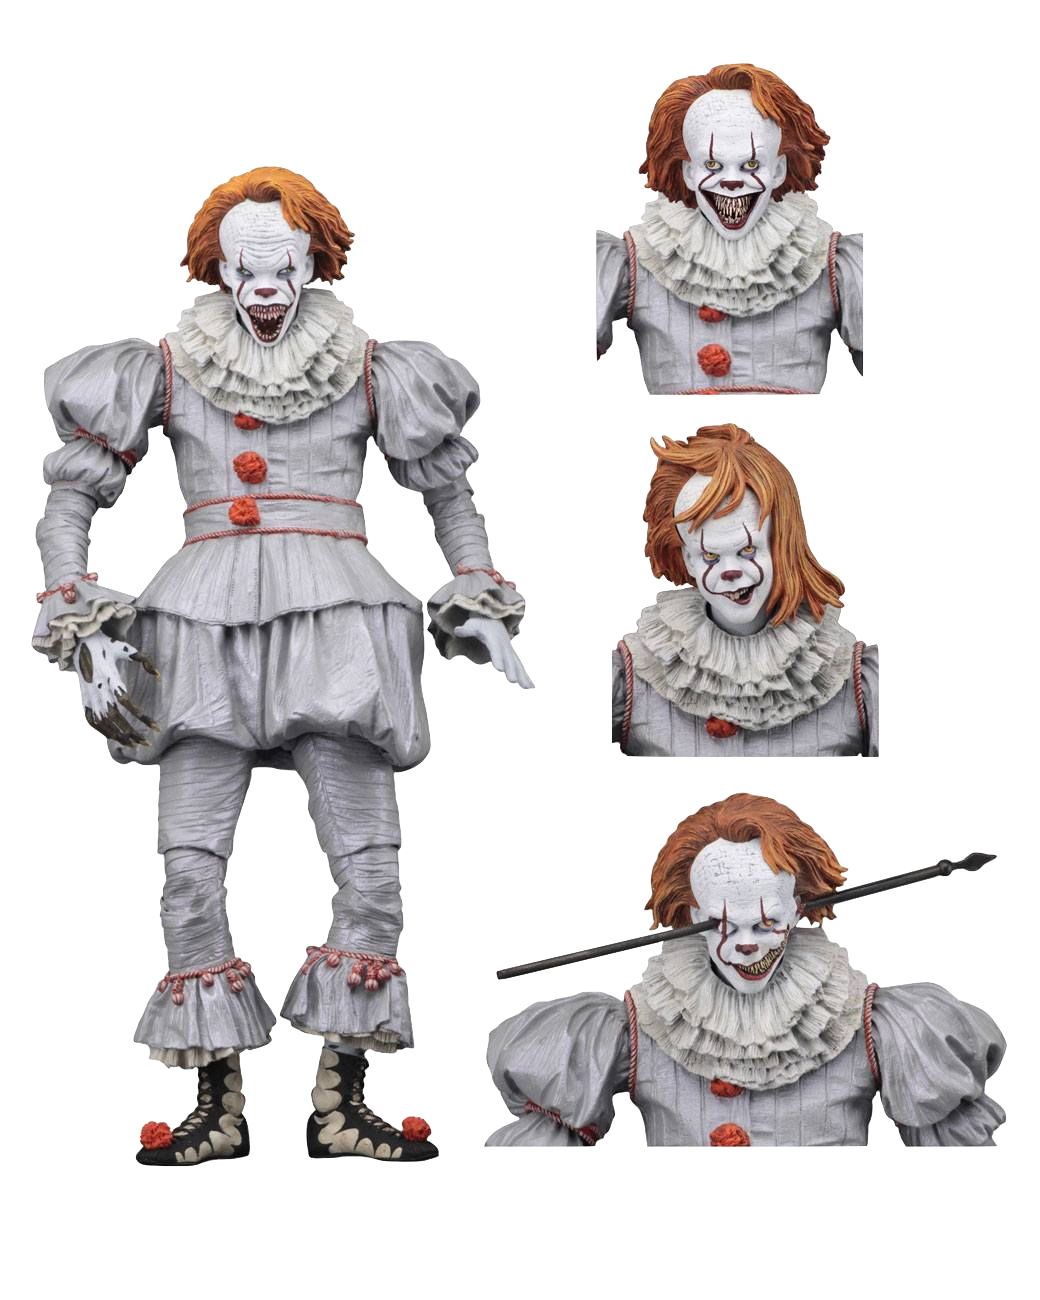 neca-2017-it-pennywise-well-house-figure-toyslife